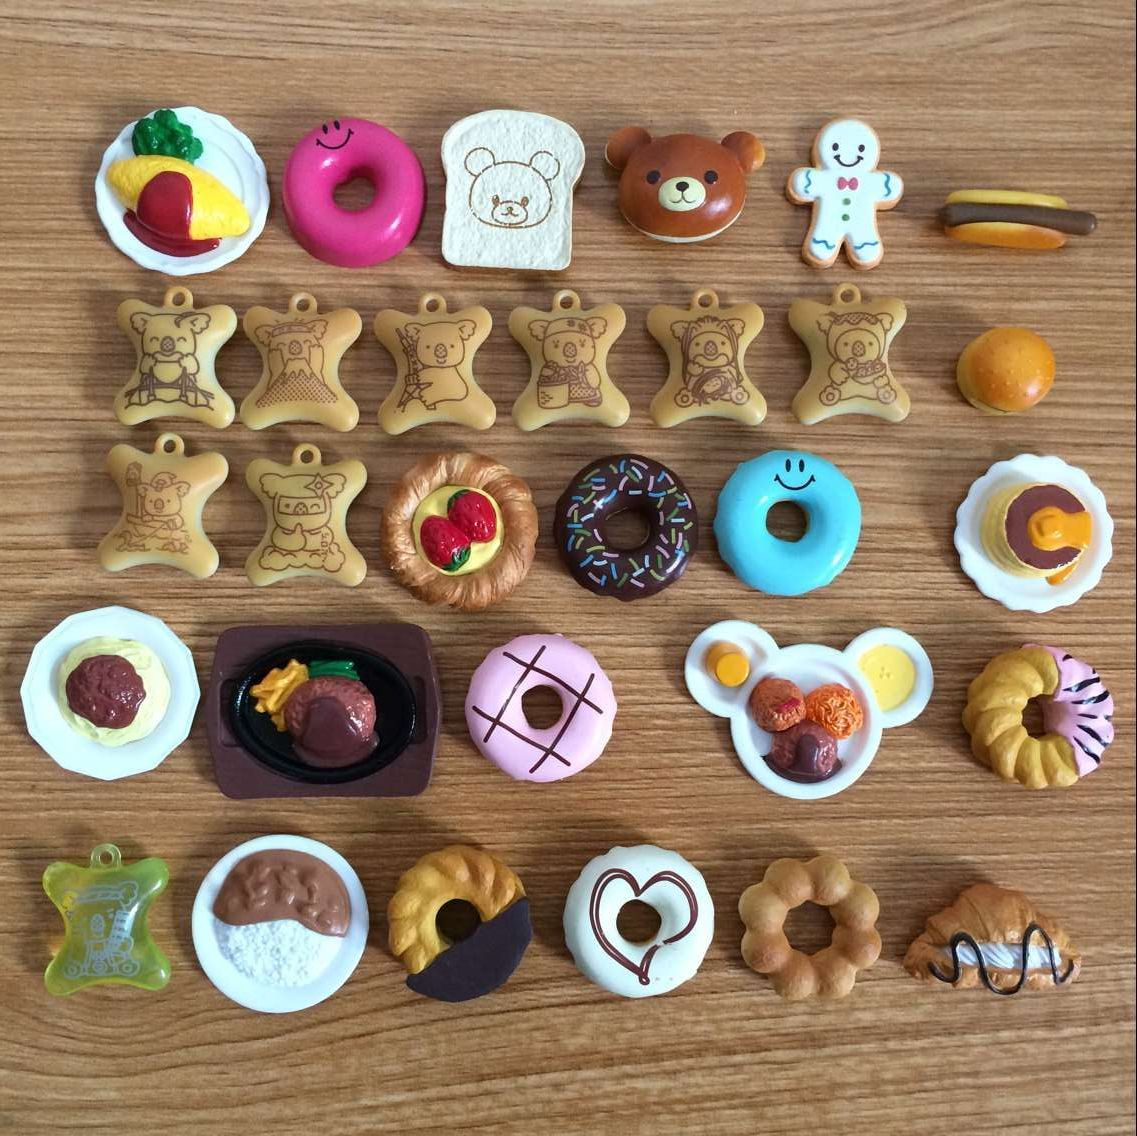 10Pcs/Set Cute Eat Biscuit Cake Donuts Doll House Toy Halloween Christmas Pretend Play Games Toy For Children Gift